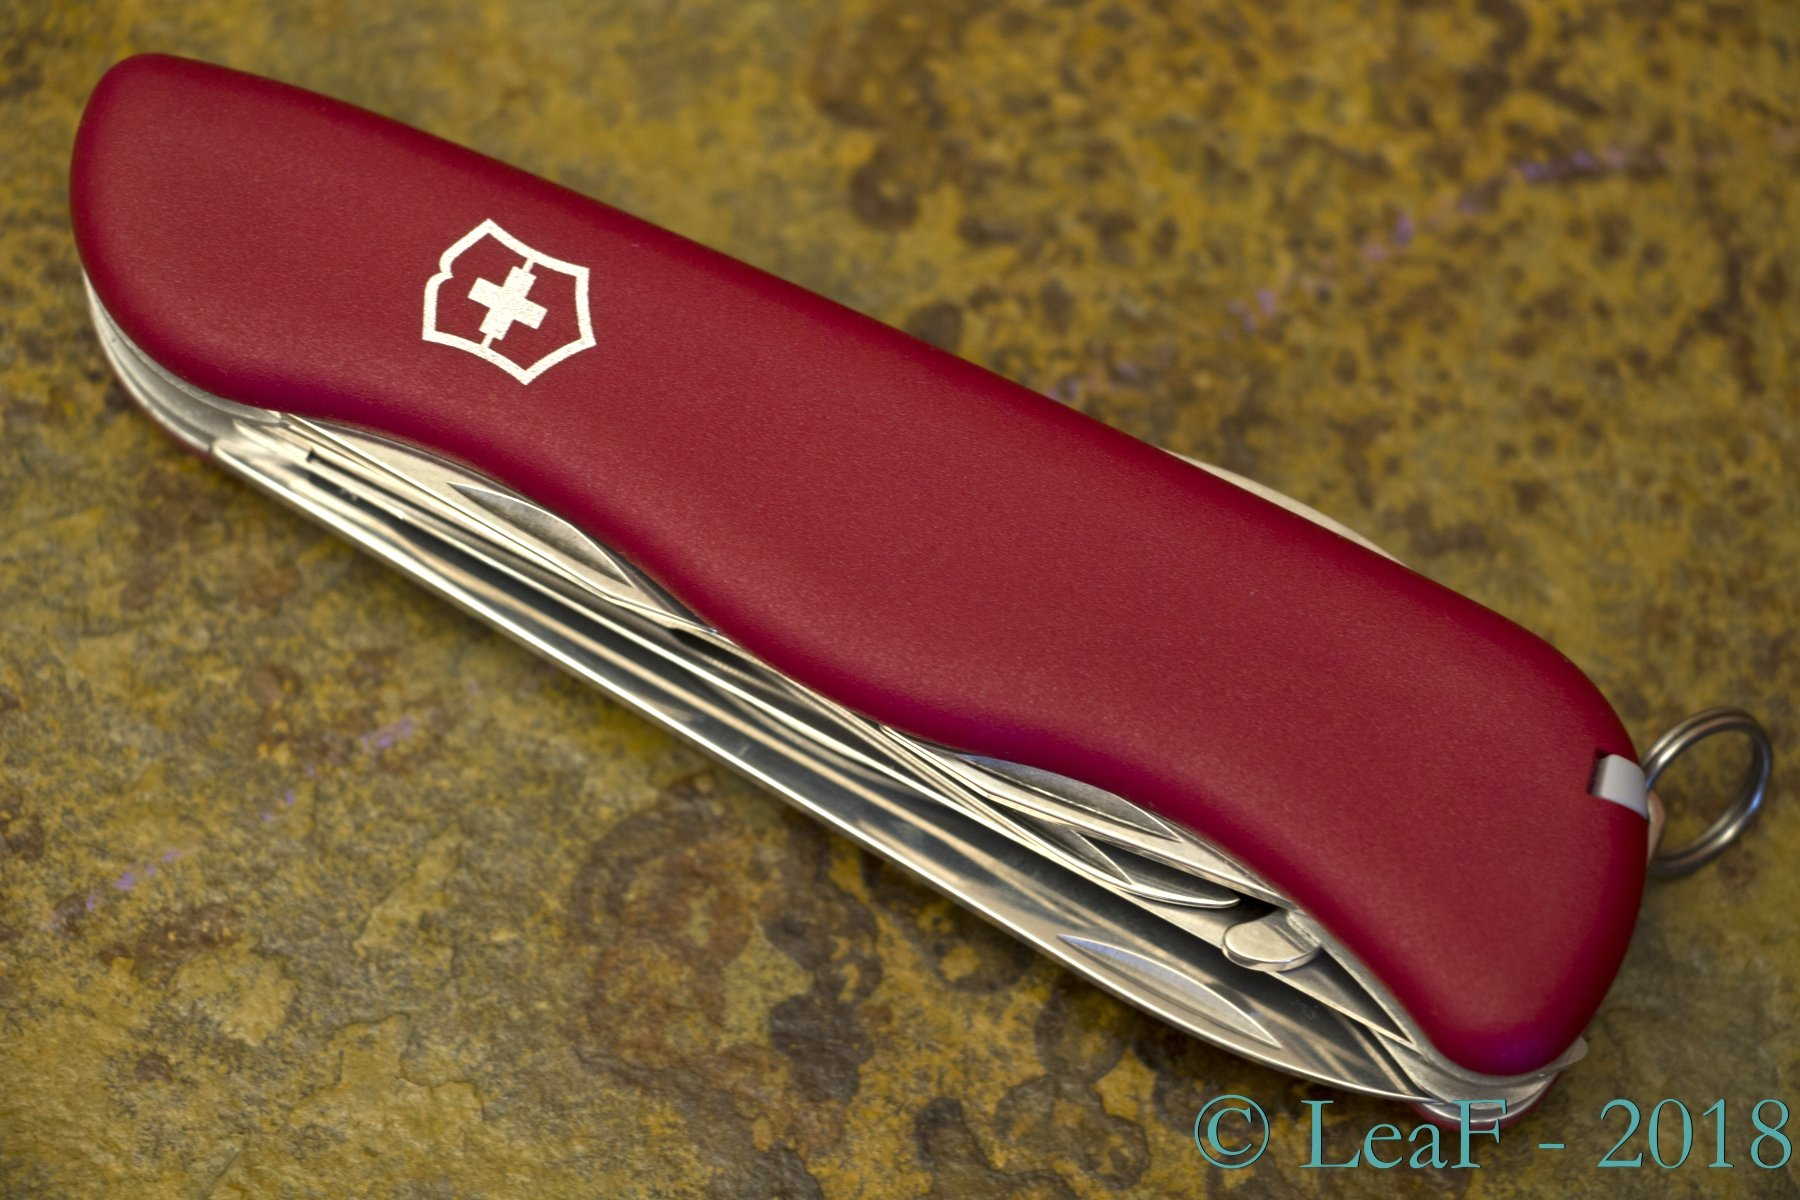 421 Outrider Leaf S Victorinox Knives Collection